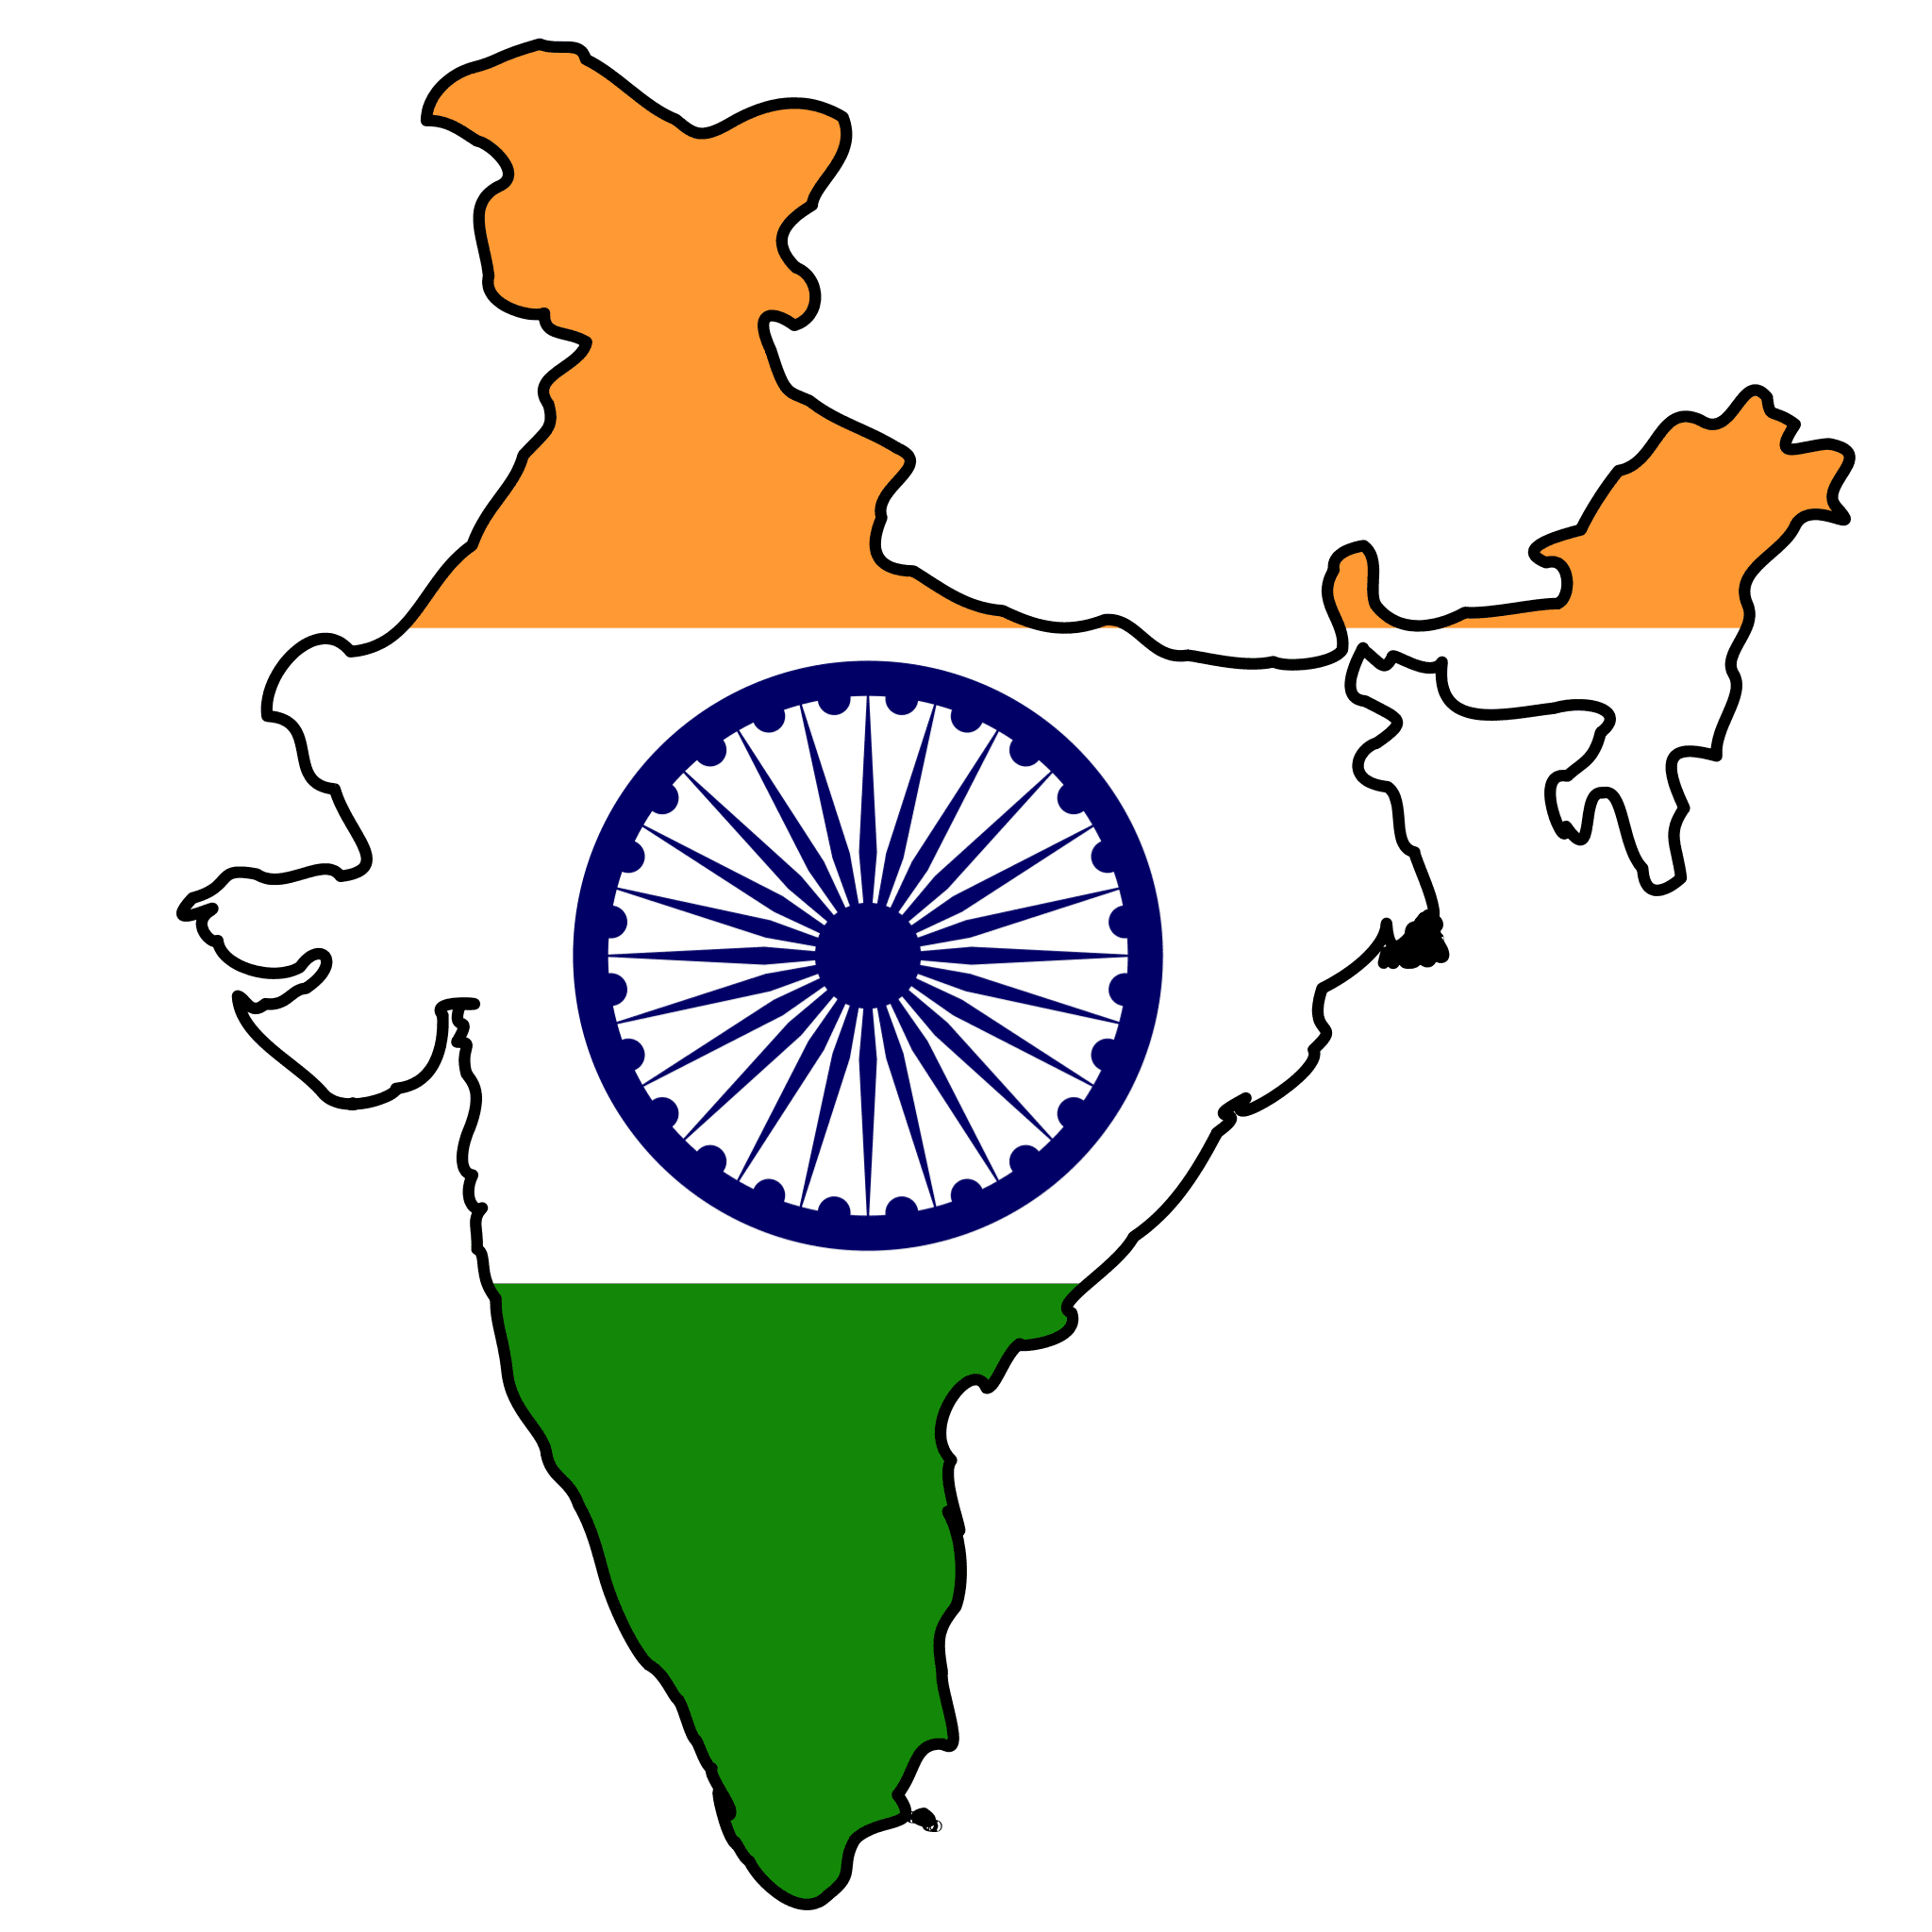 India clipart map bharat. Thatis www roopenroy com